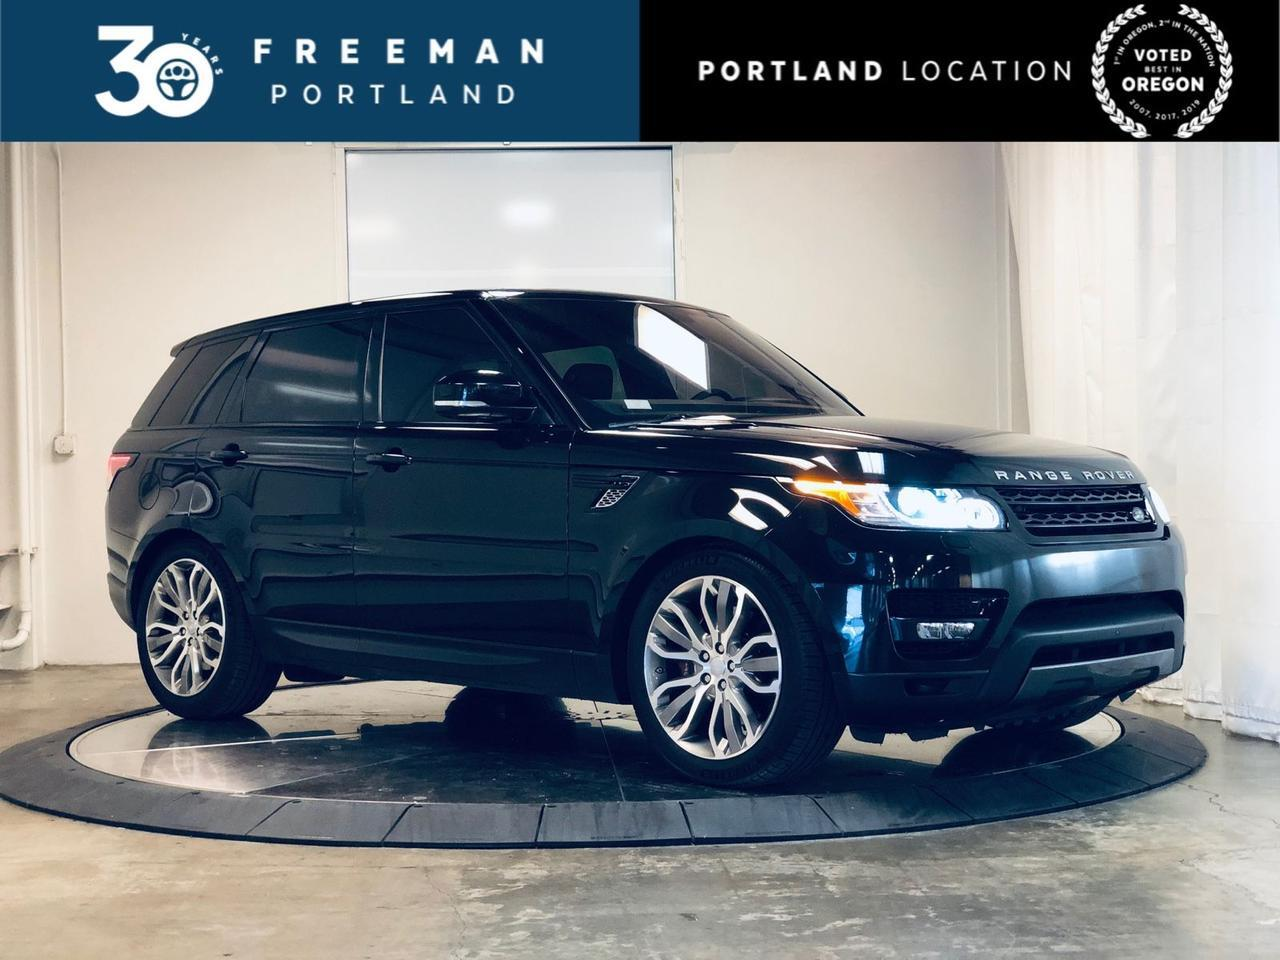 2016 Land Rover Range Rover Sport V8 Dynamic Adaptive Cruise Htd/Ventilated Seats Portland OR